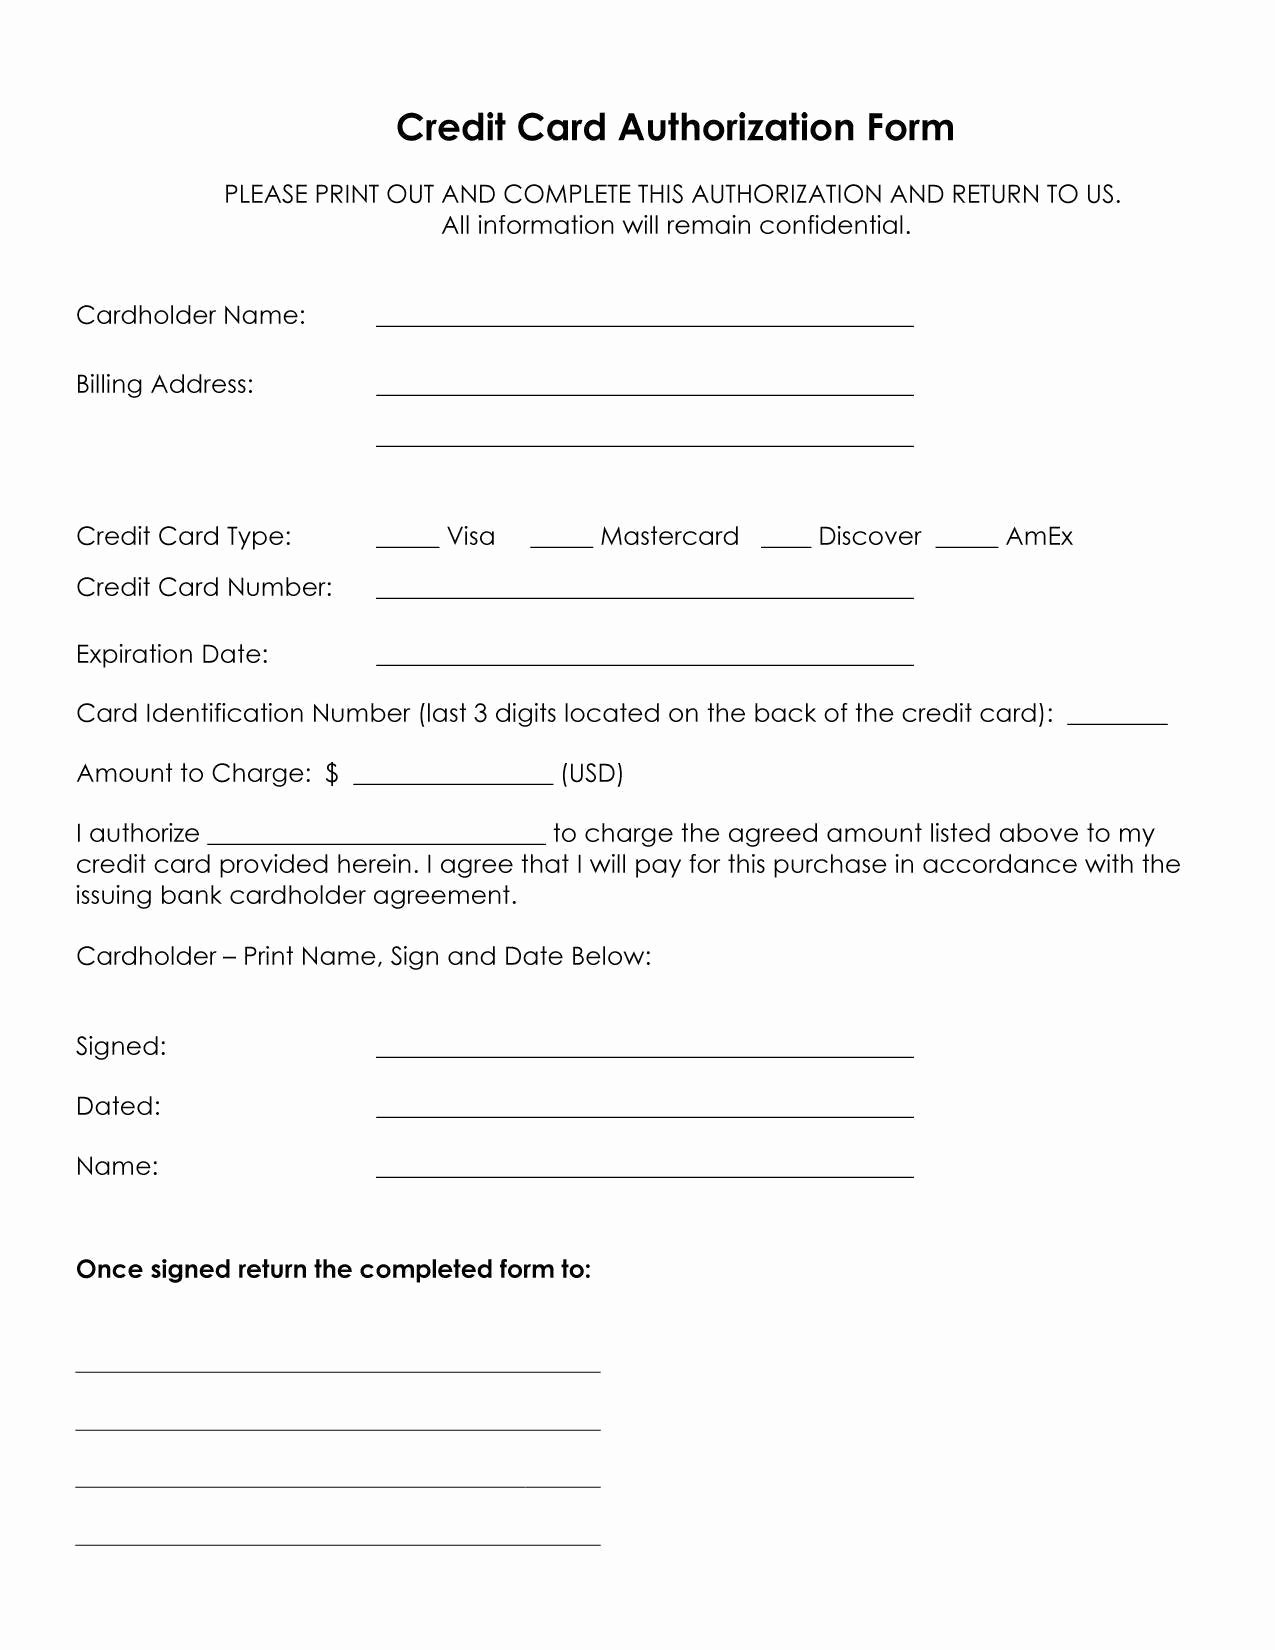 Credit Card Slip Template Lovely Authorization for Credit Card Use Free forms Download